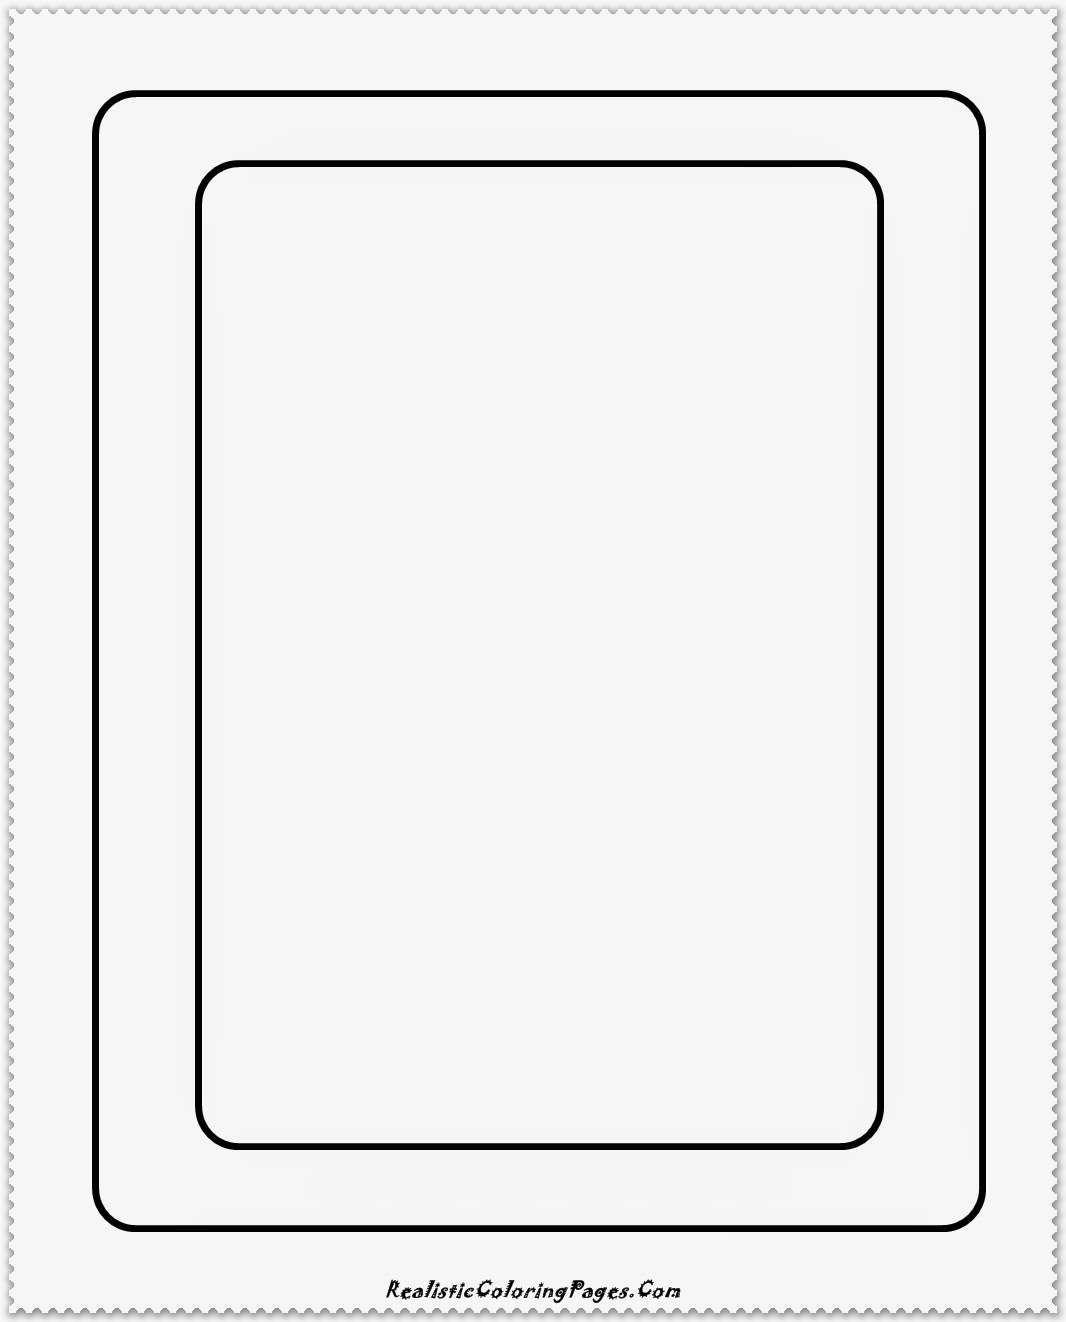 simple rounded box coloring page